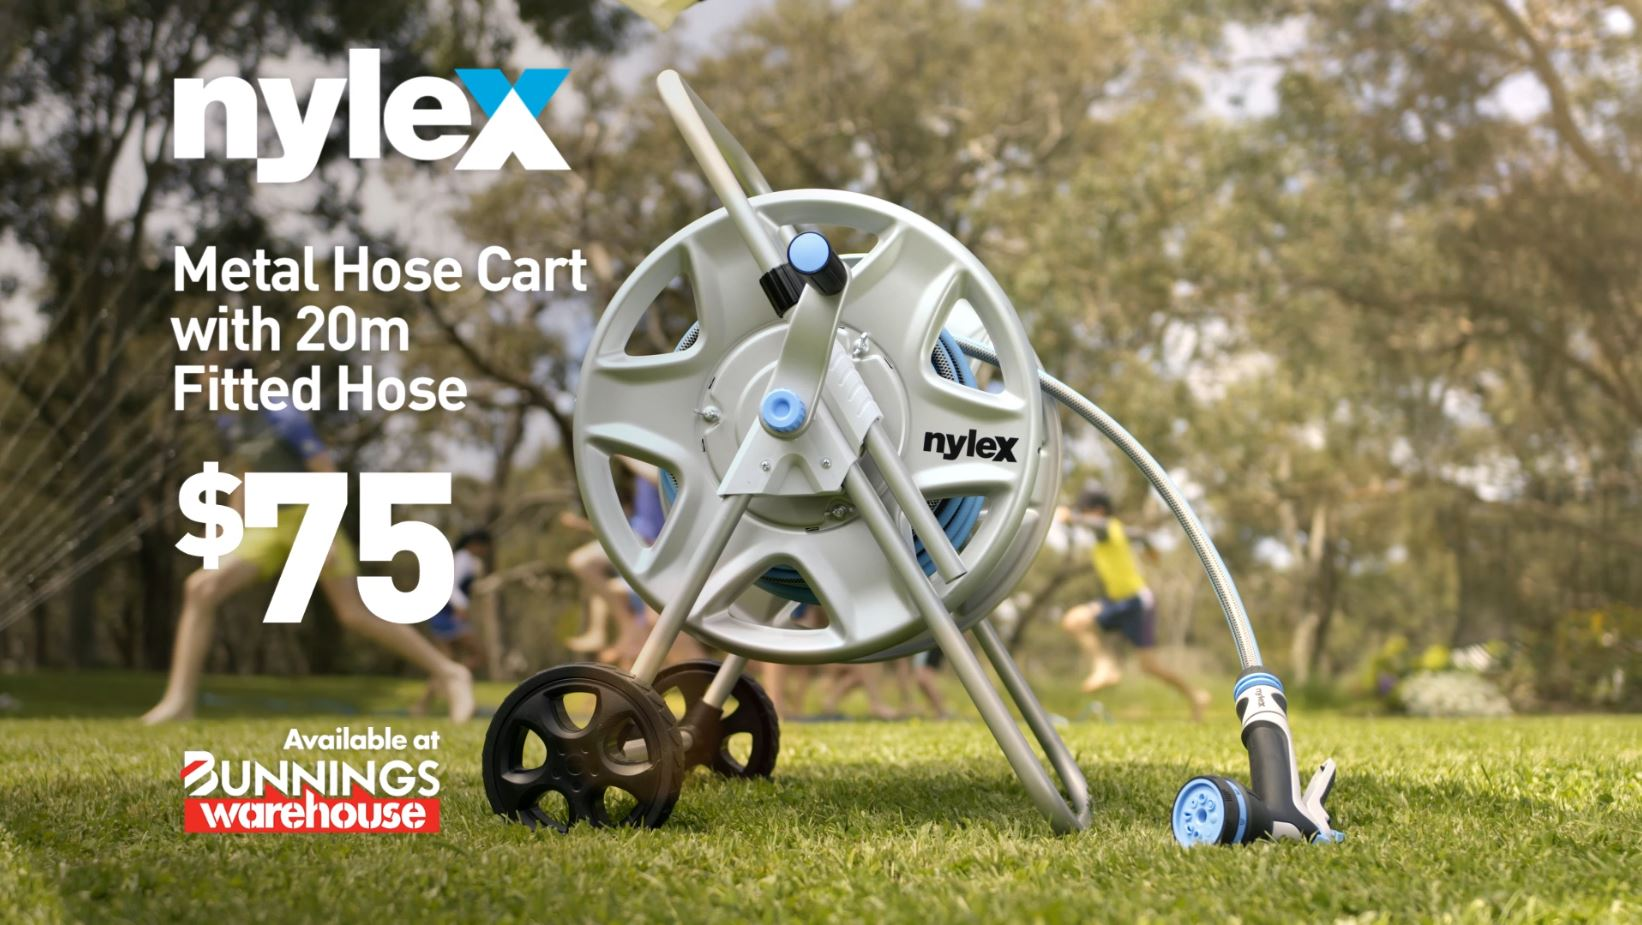 Nylex Metal Hose Cart TV Commercial